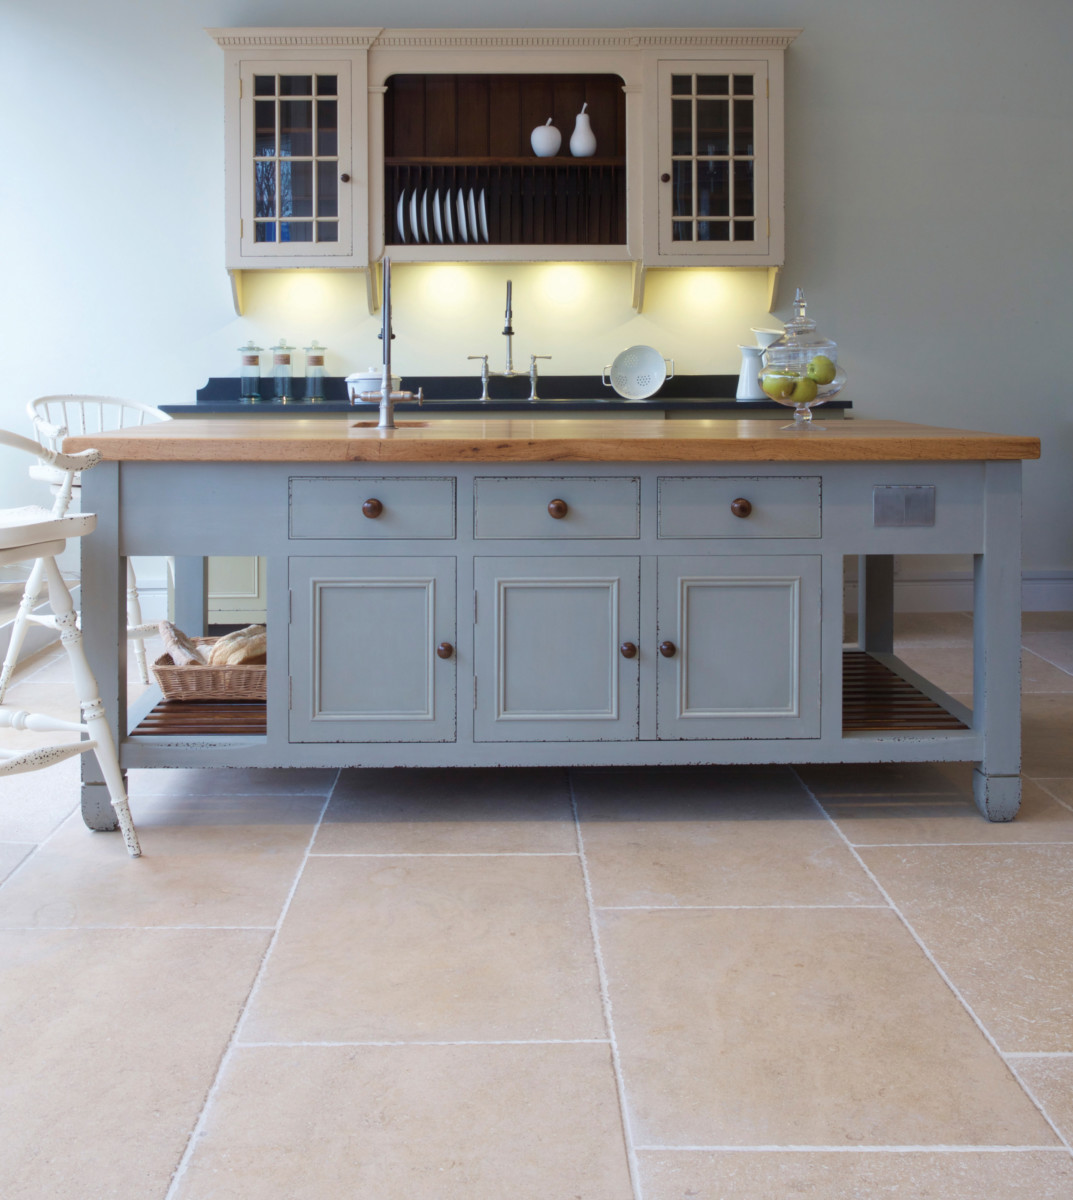 limestone flooring kitchen floor tiles 2